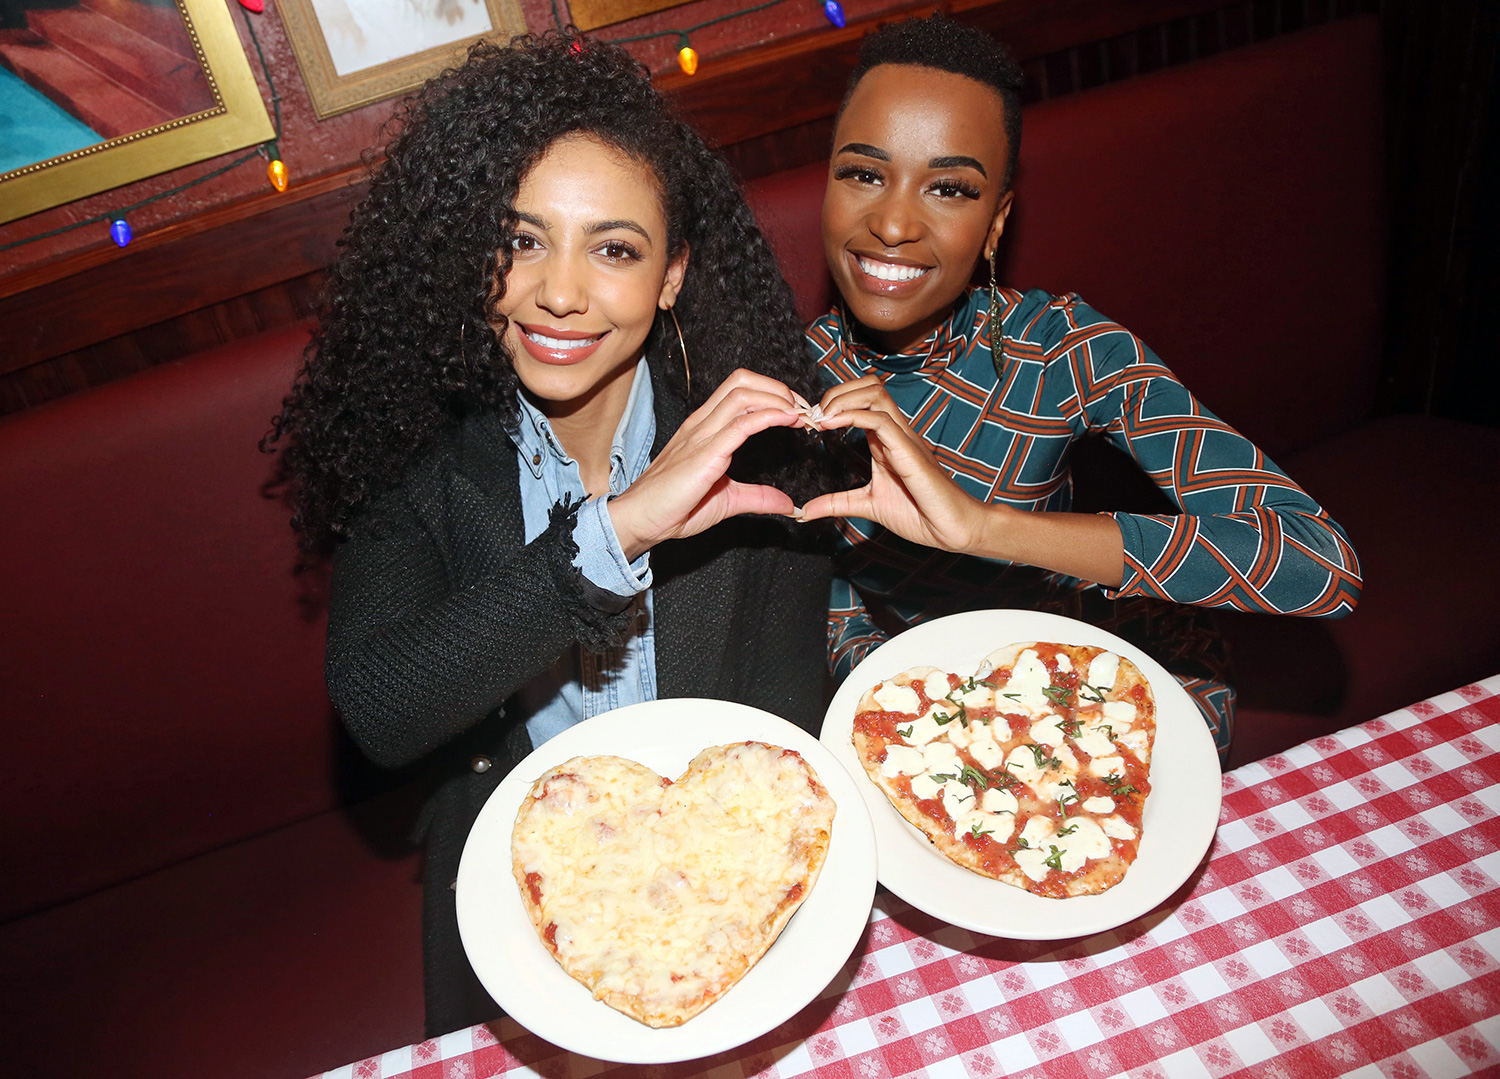 Miss USA 2019 Cheslie Kryst and Miss Universe 2019 Zozibini Tunzi pose as Miss USA & Miss Universe celebrate Valentines Day with Limited Edition Heart Shaped Pizza at Buca di Beppo Times Square on February 5, 2020 in New York City